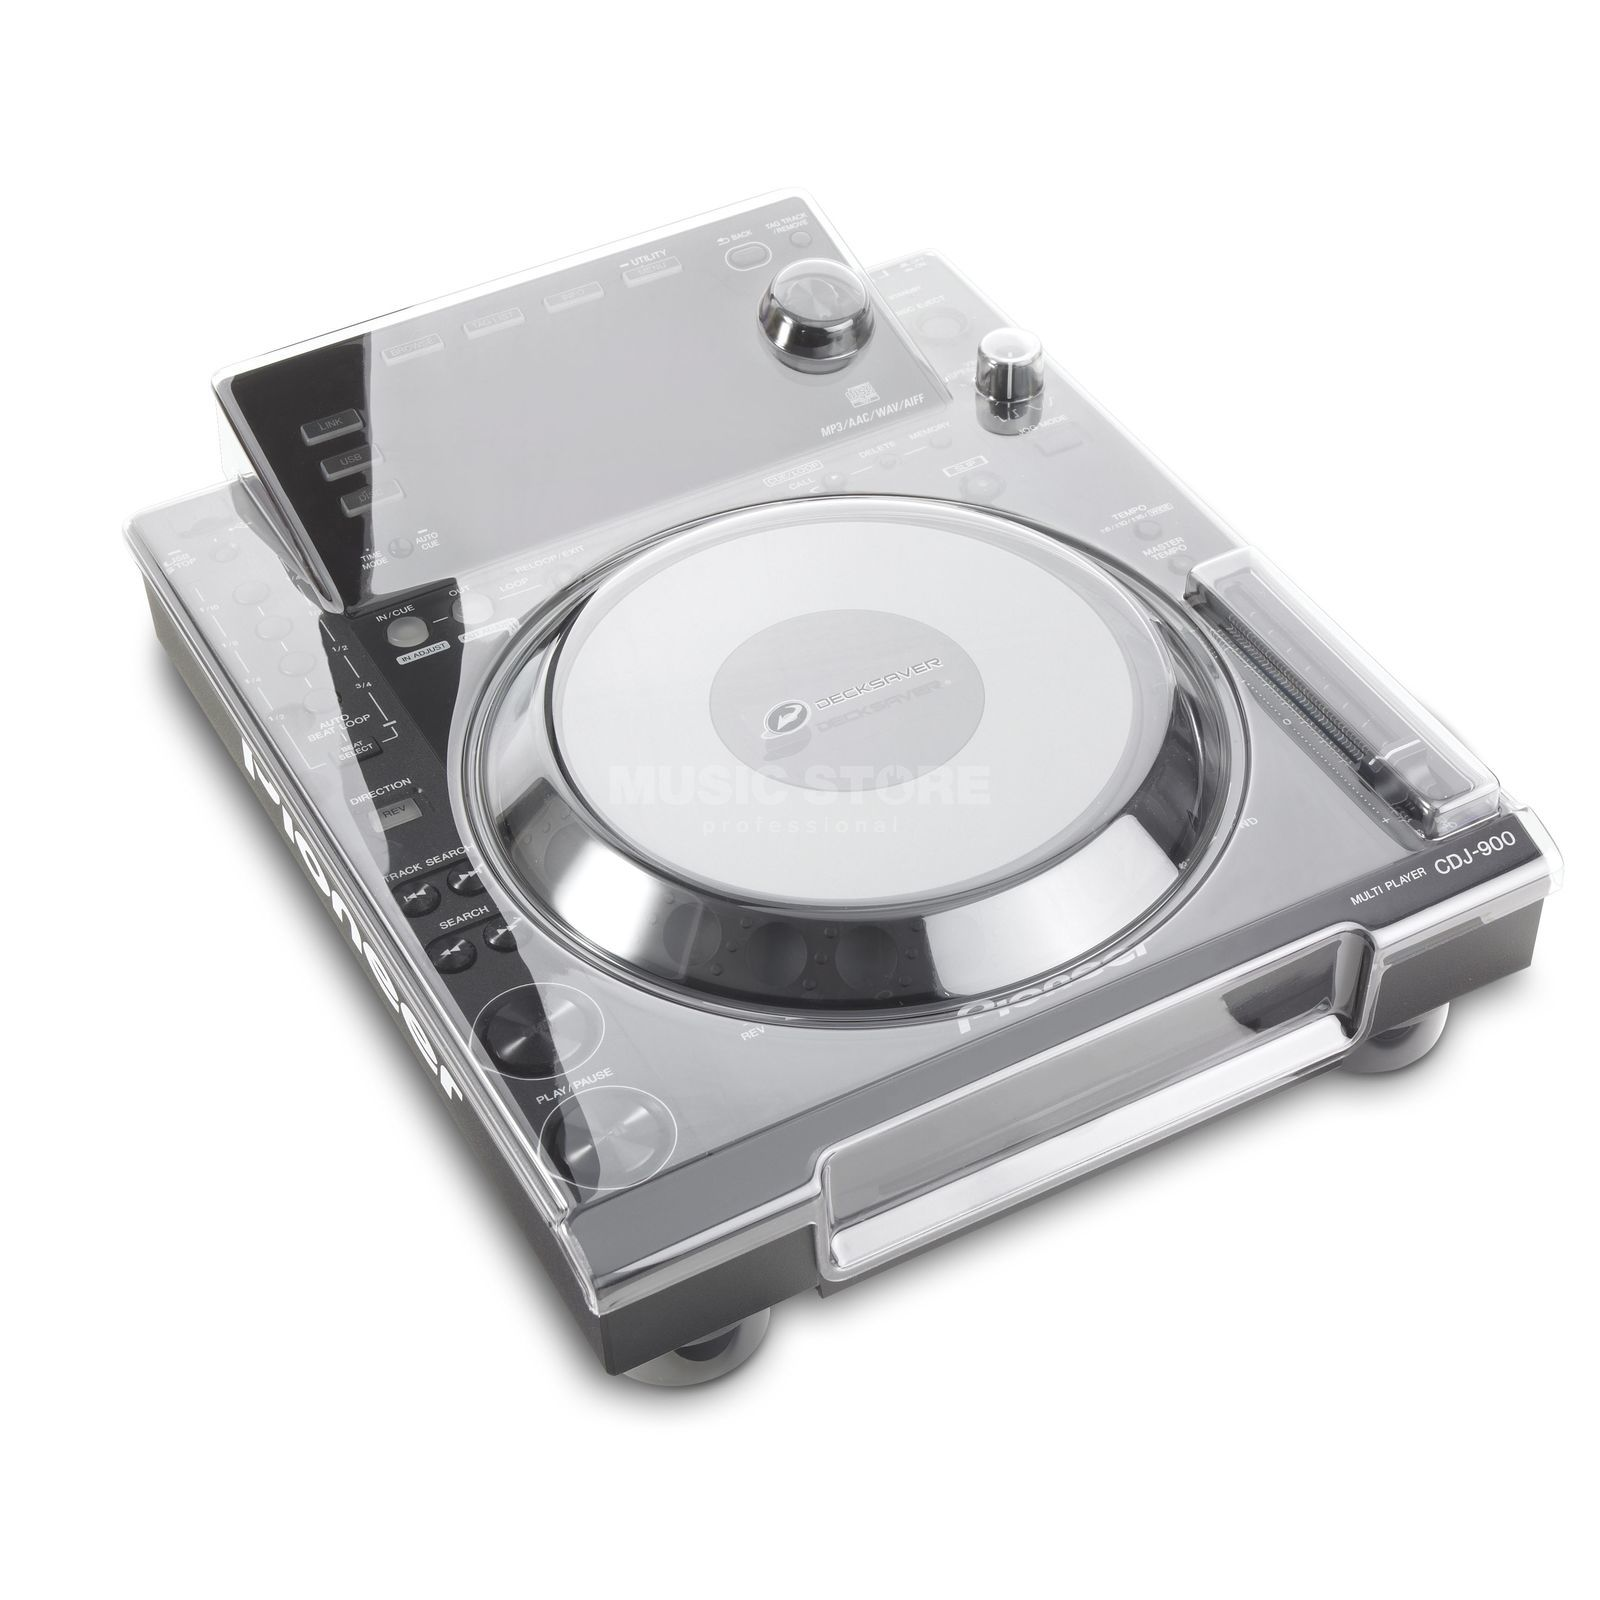 Decksaver Dust Cover CDJ 900  Product Image